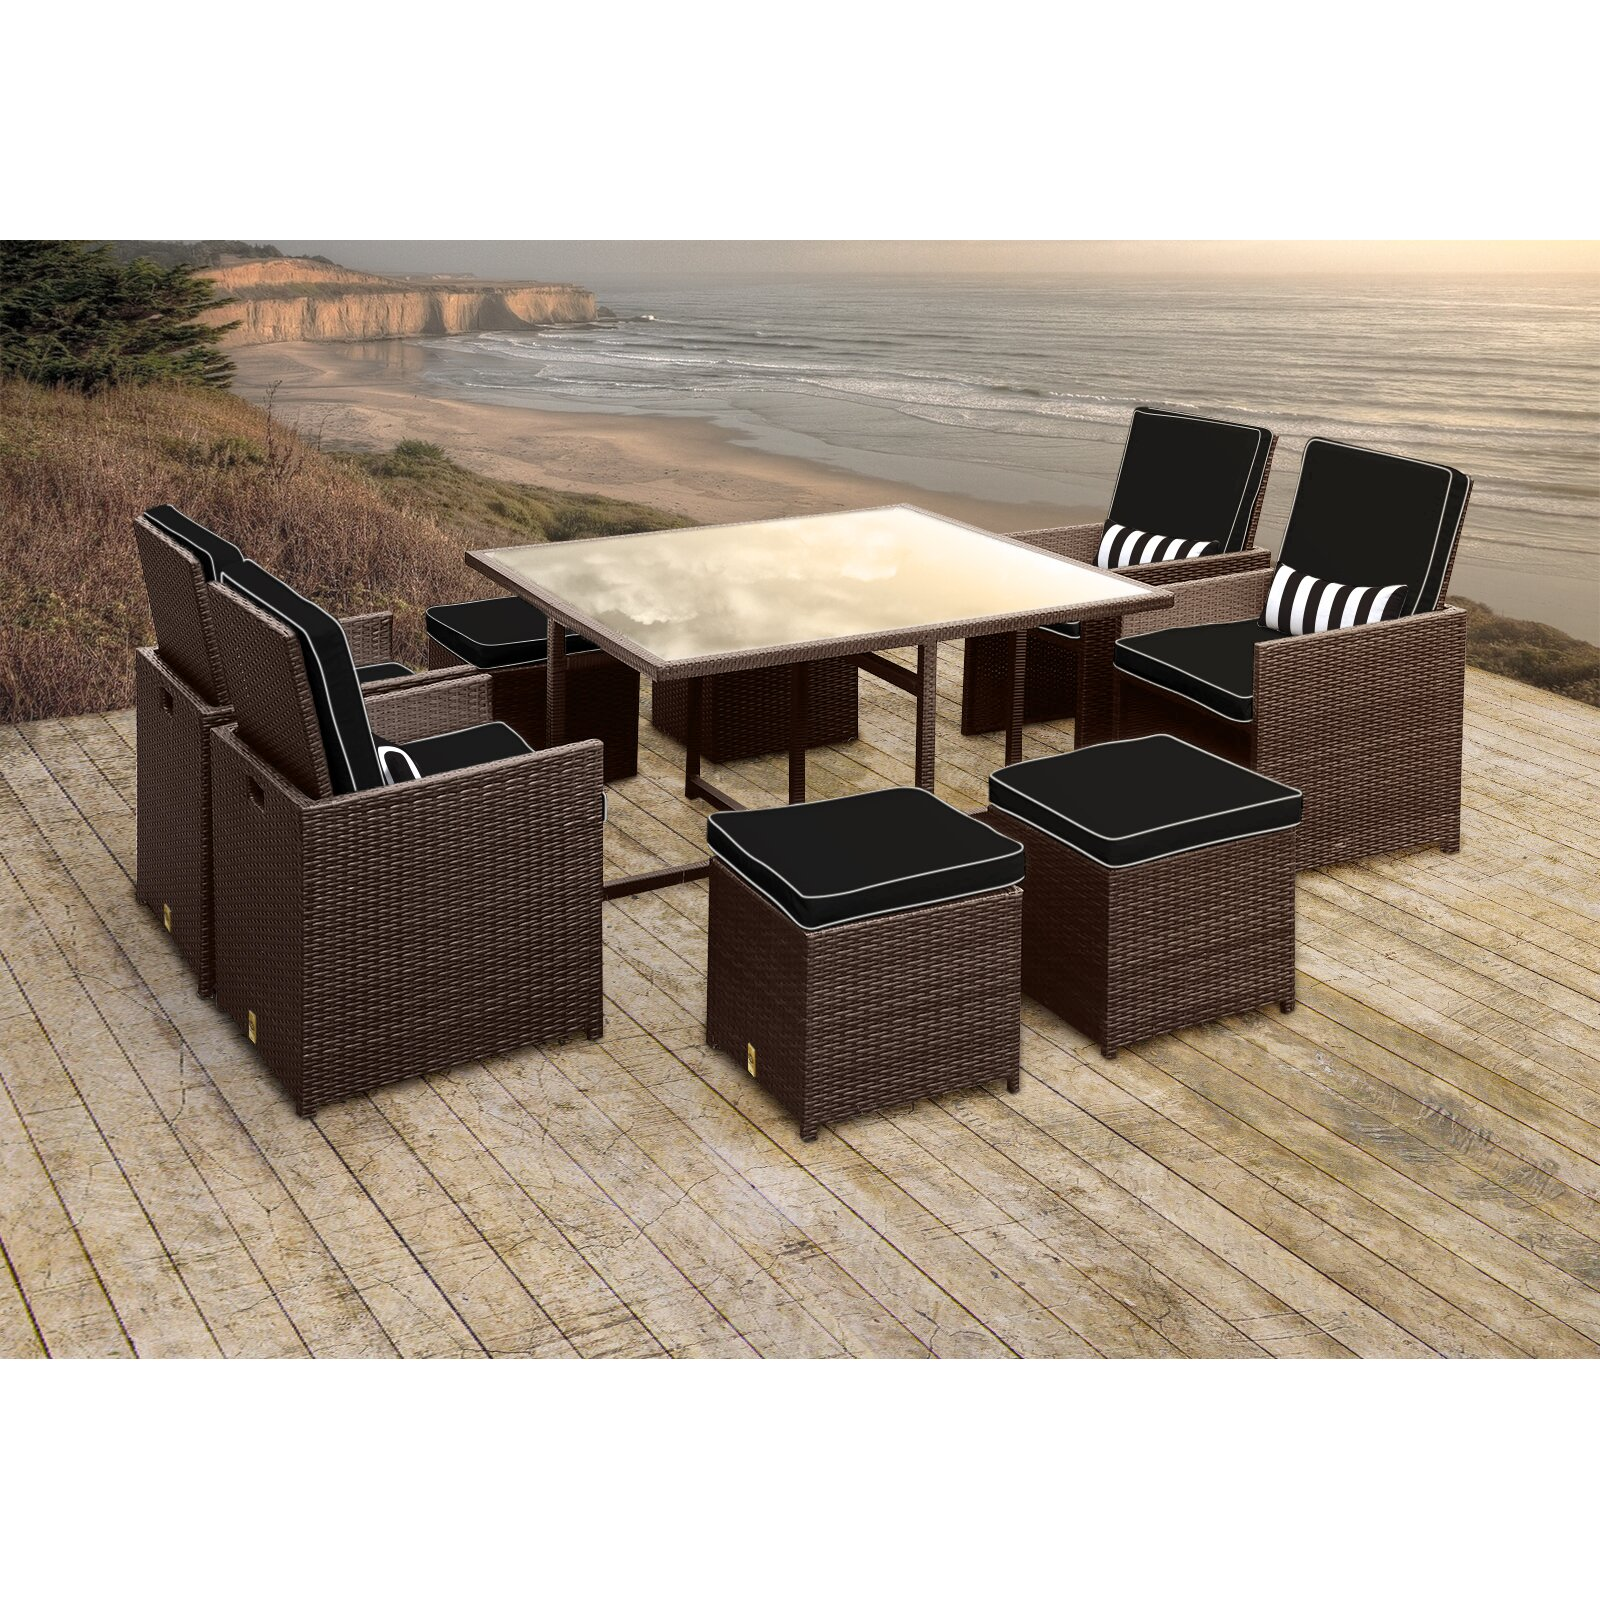 Resistant rattan effect outdoor patio dining set with round table - Stella Ii Patio Rattan 9 Piece Dining Set With Cushions And Rectangular Toss Pillows